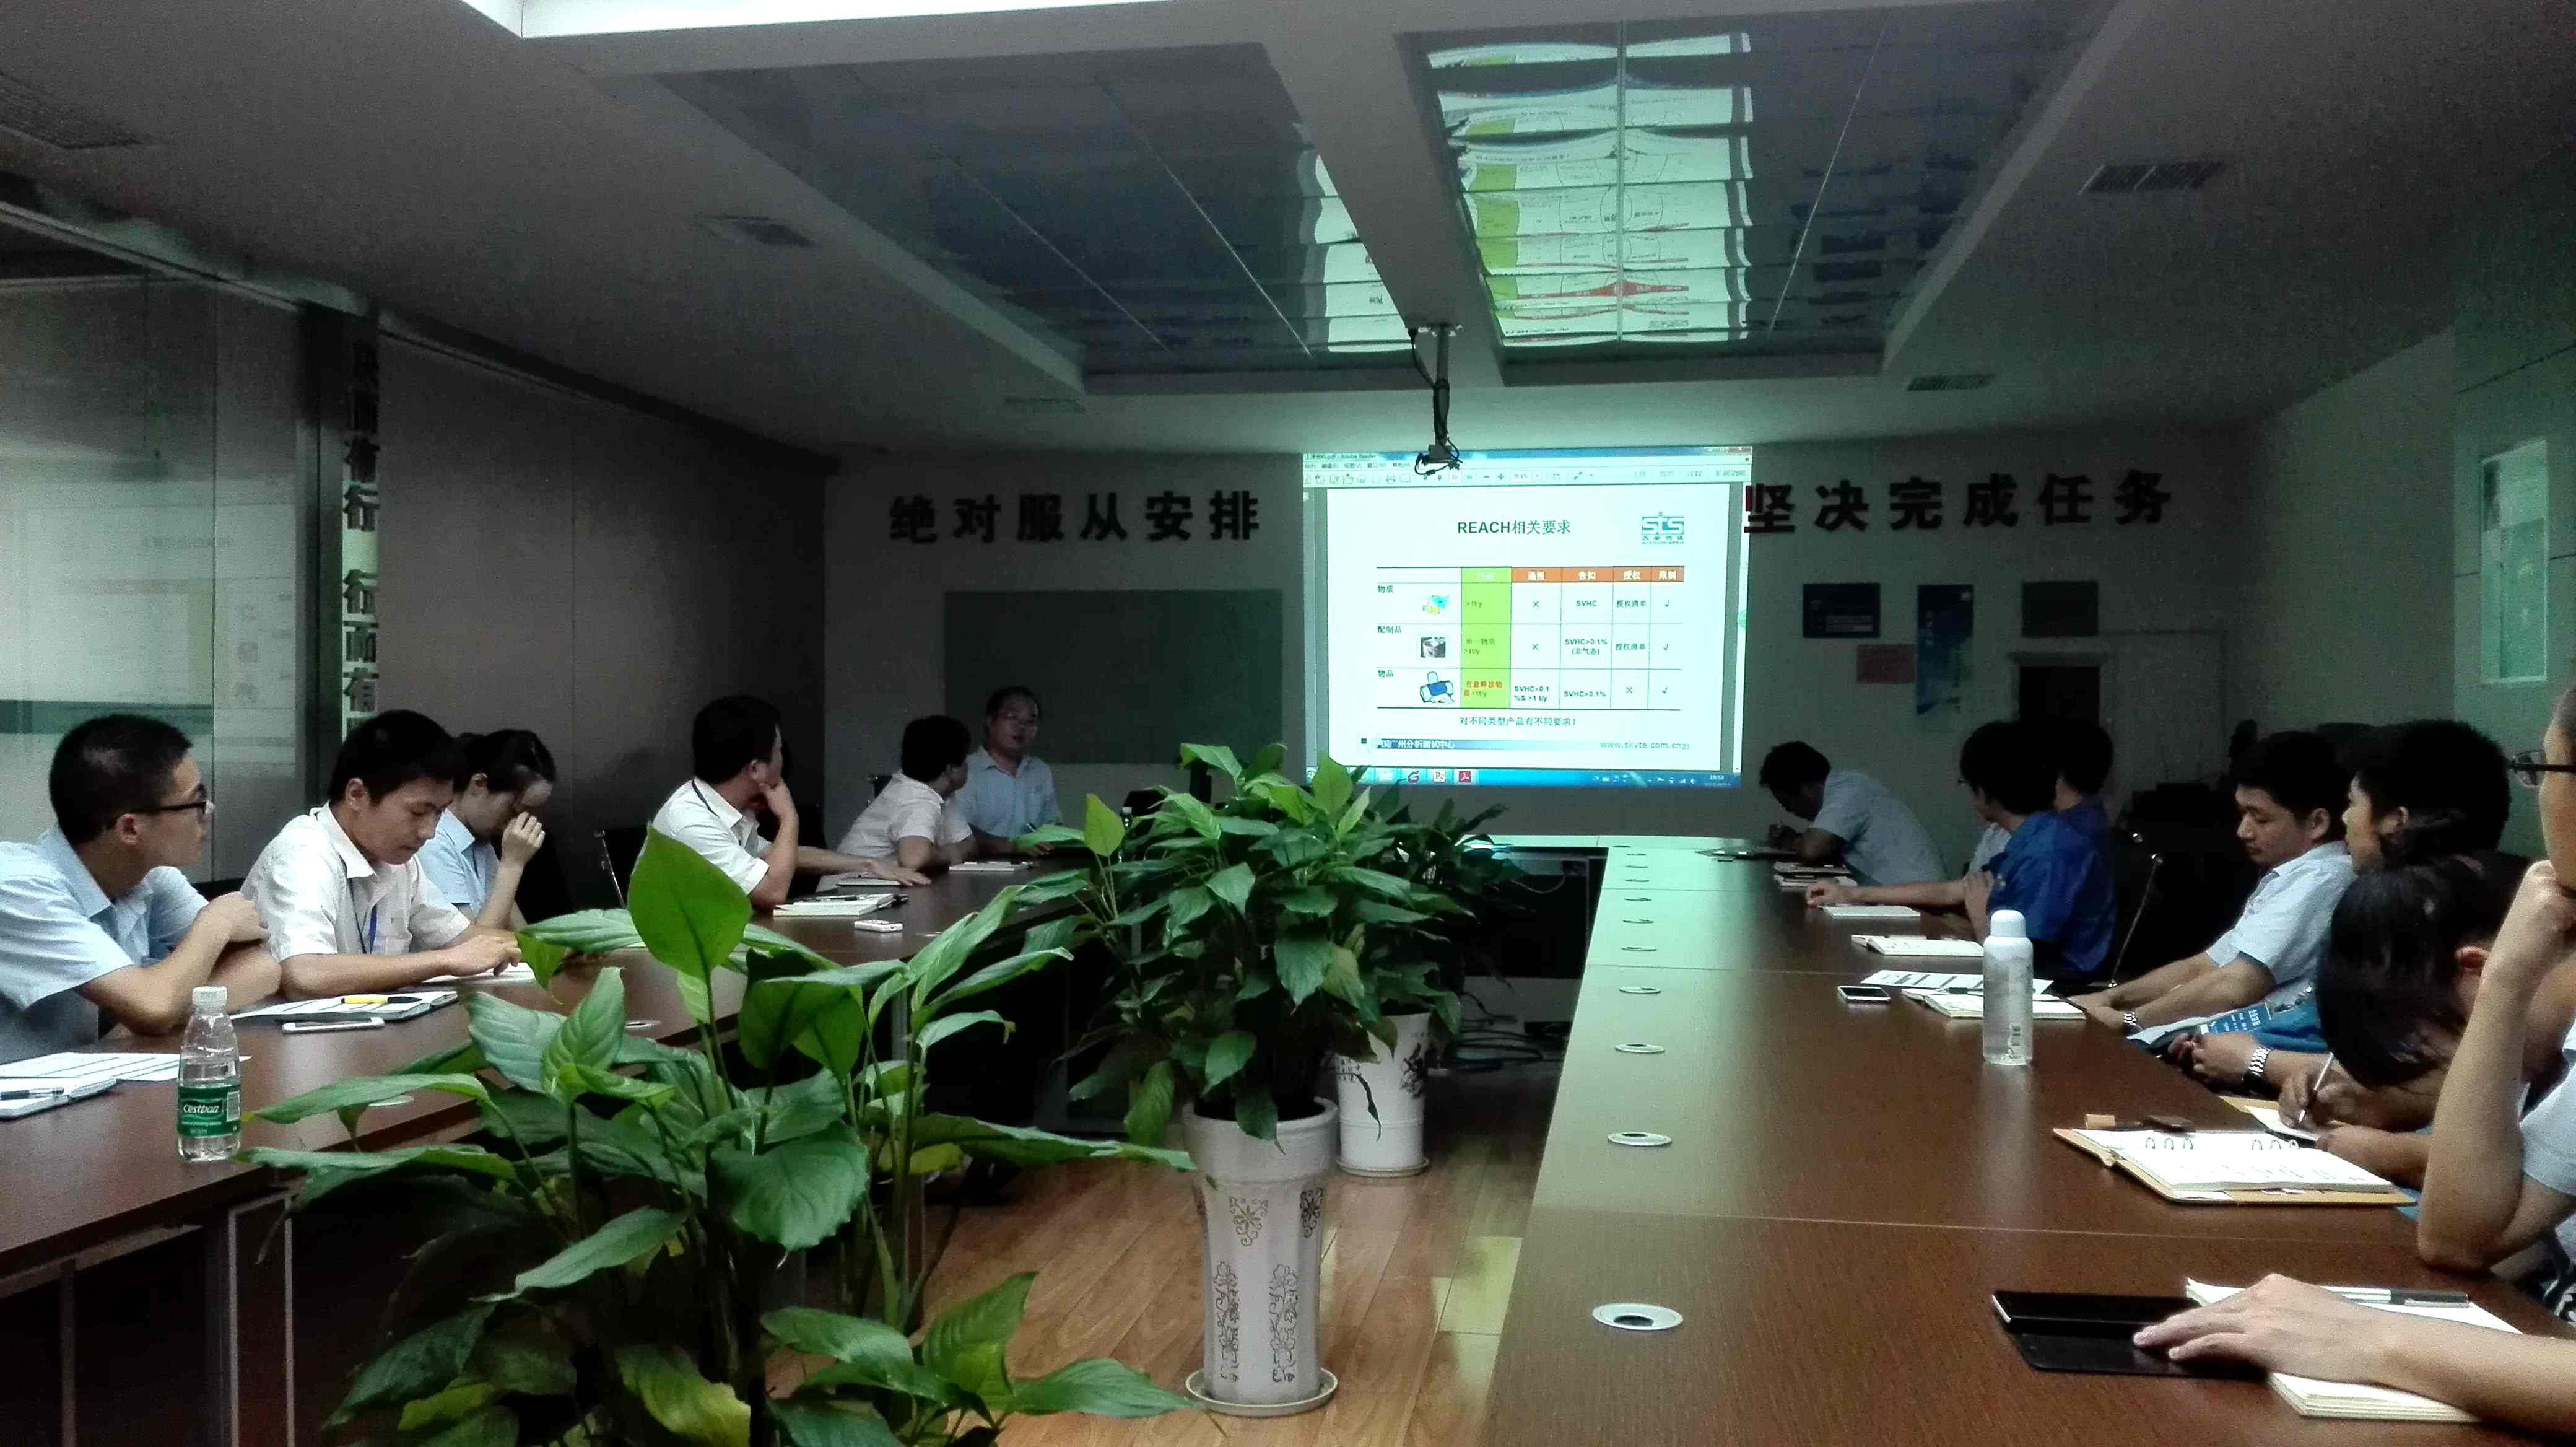 August 16, 2016--Zhou Wei lectures on environmental protection courses